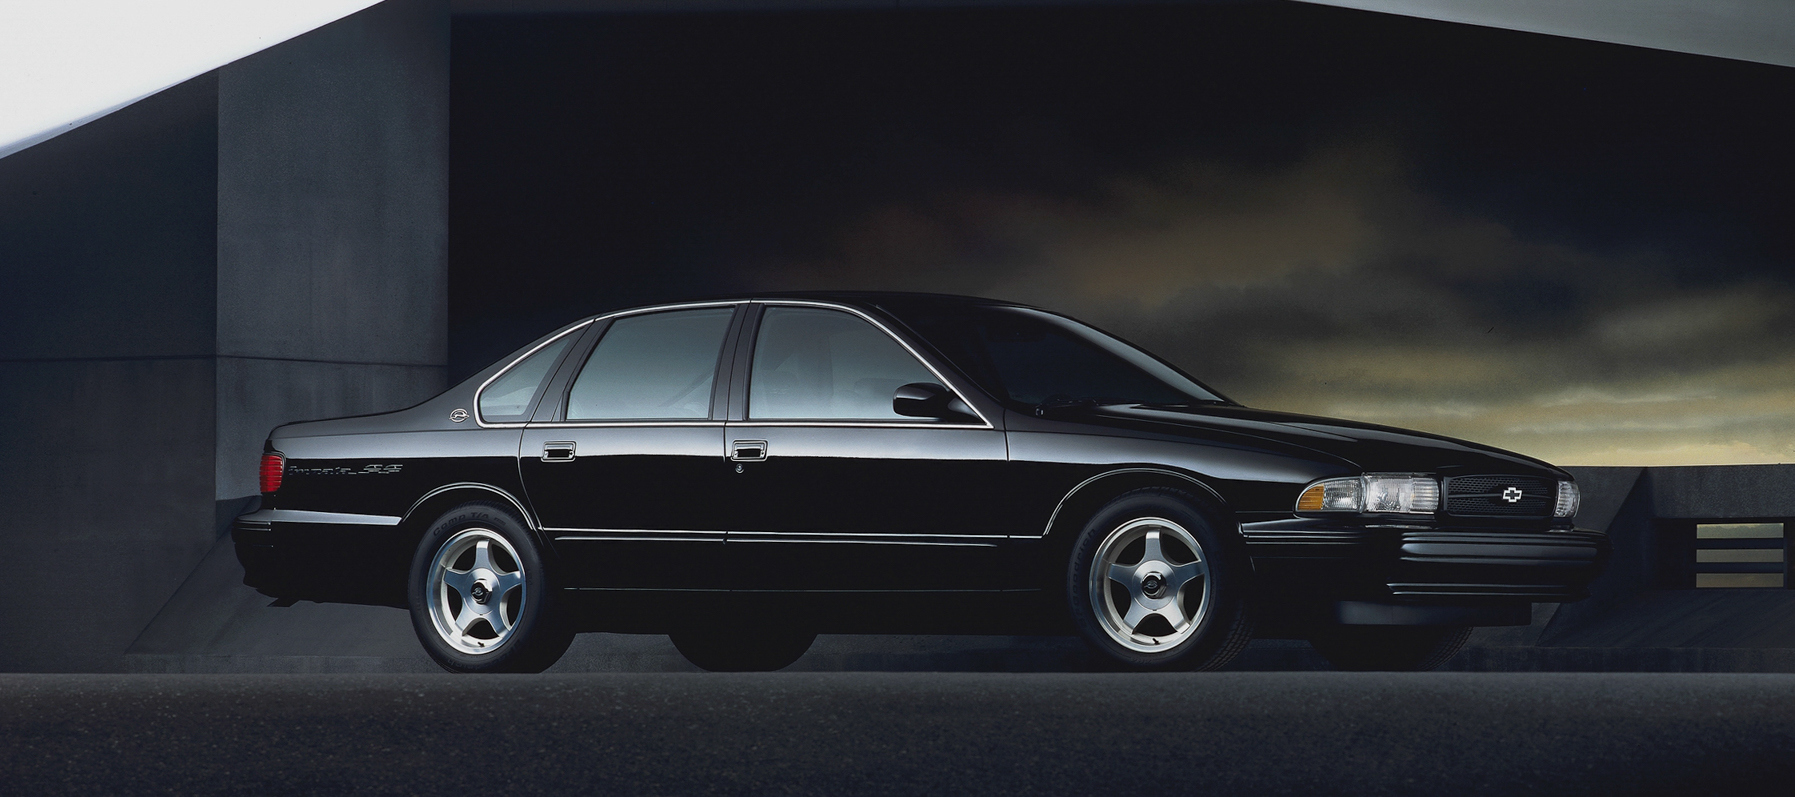 90s classic. The 1995 Chevrolet Impala SS Sedan was factory-equipped with a 260-hp horsepower LT1 V-8, cupholders, column-shift automatic, and driver and passenger airbags.